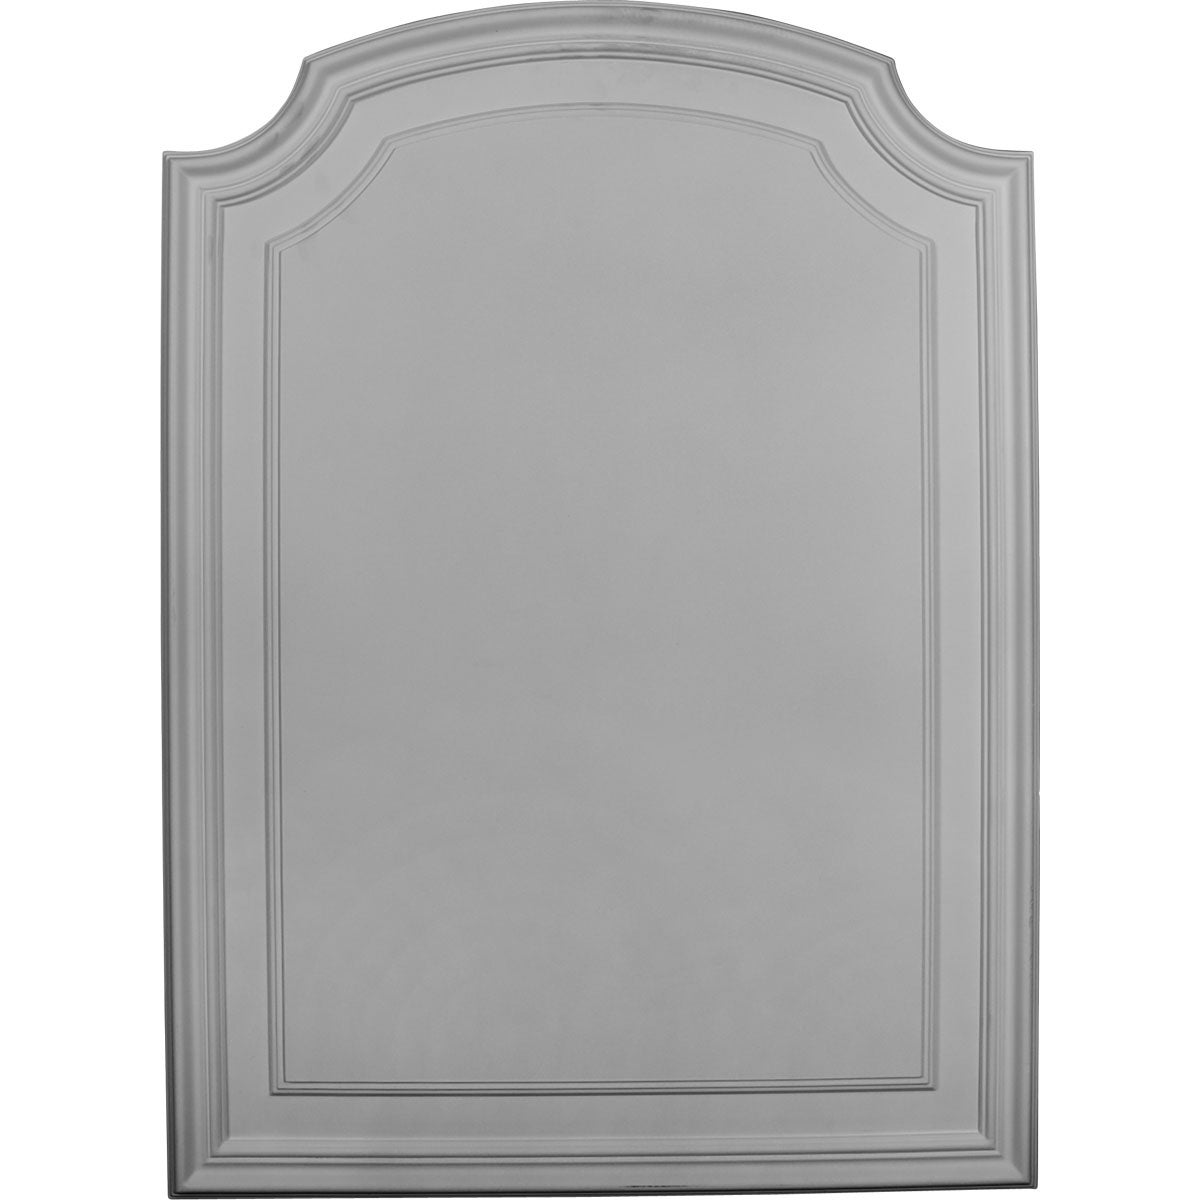 21 5/8W x 29 3/4H x 5/8P Legacy Arch Top Wall/Door Panel (12-Pack)